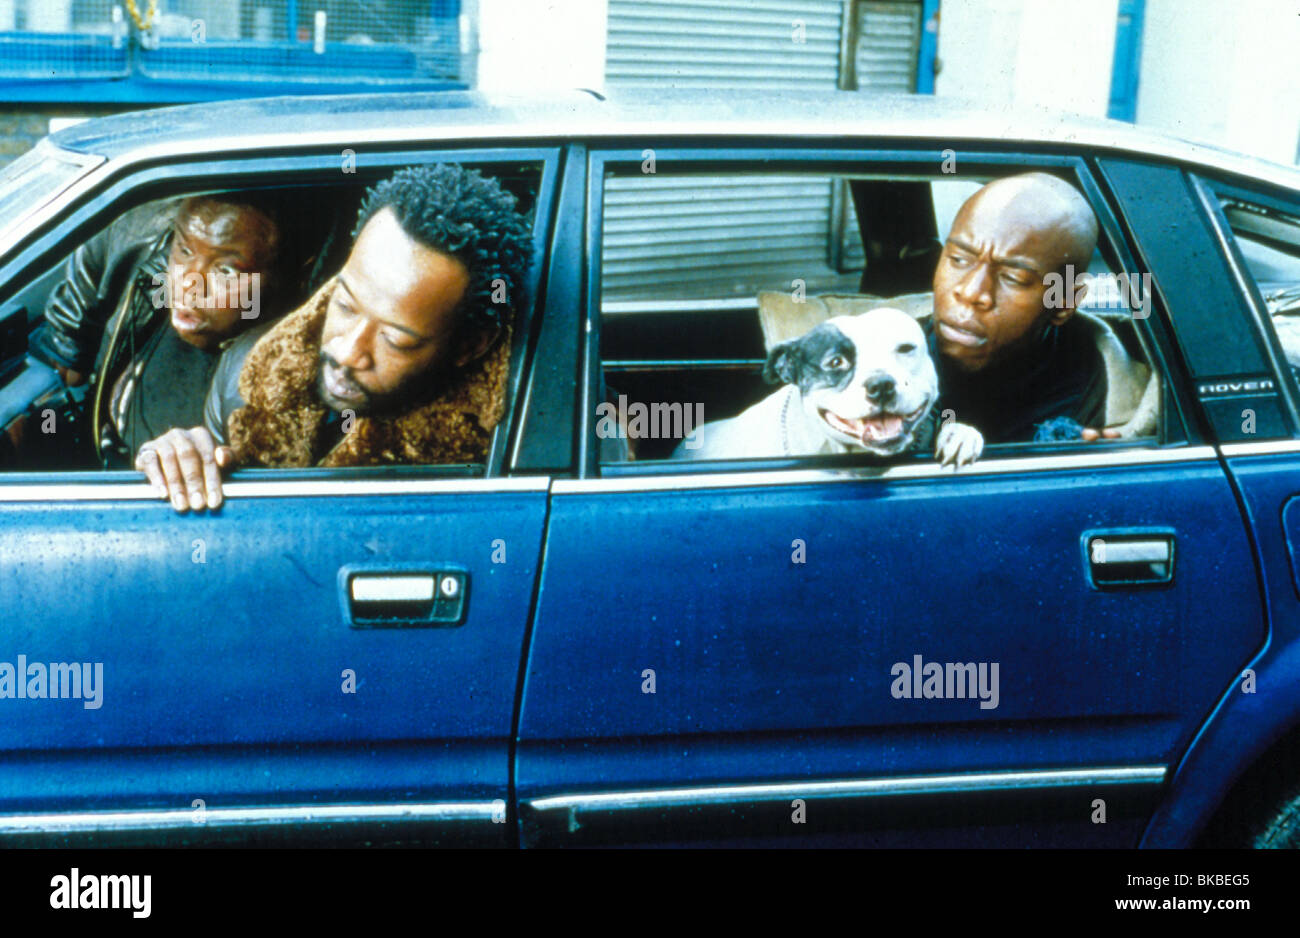 SNATCH (2000) ADE, LENNIE JAMES, ROBBIE GEE SNAT 054 - Stock Image